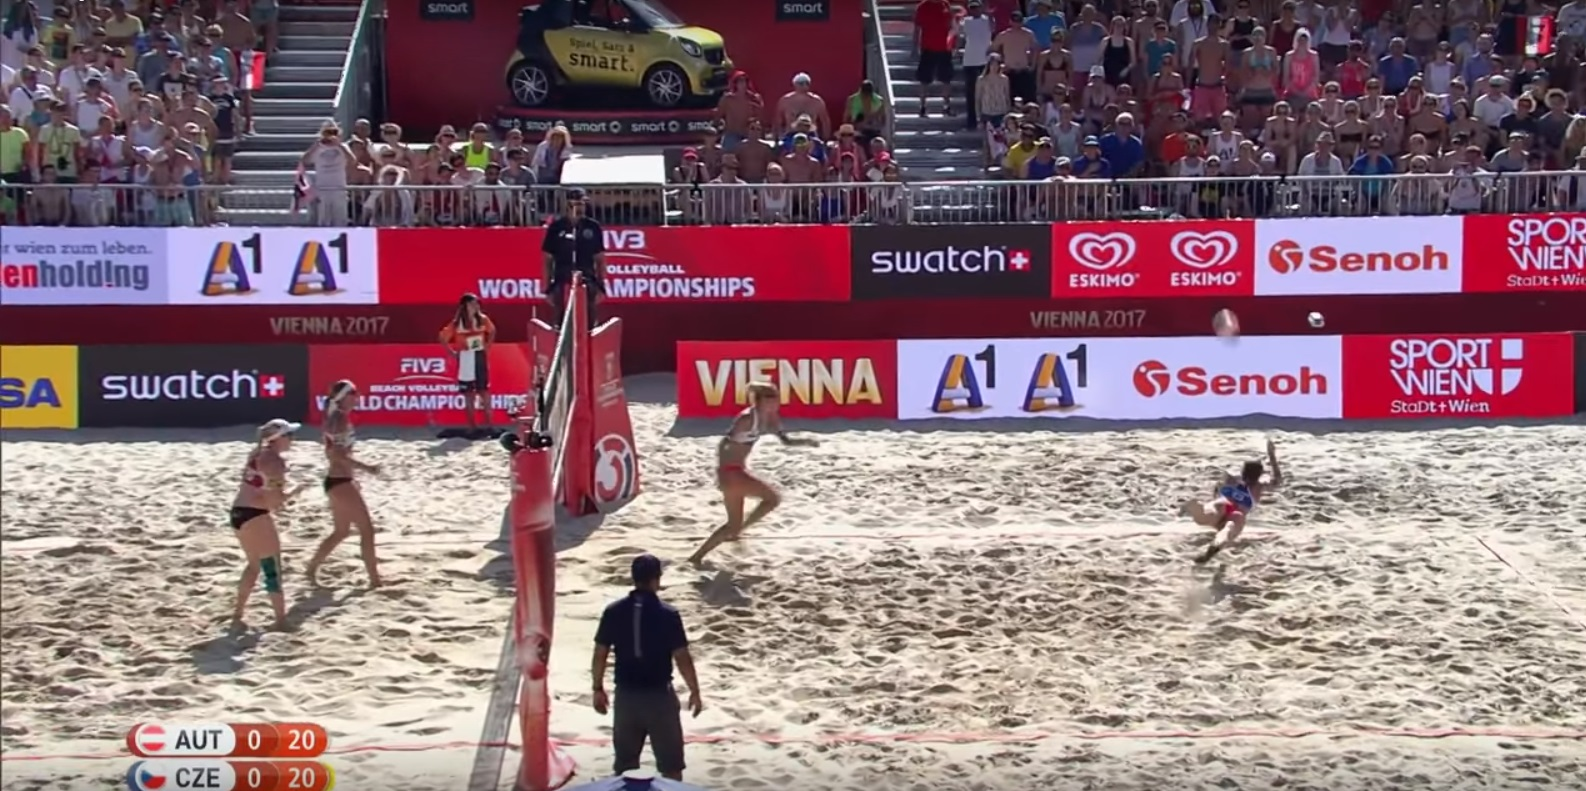 #WorldChampsVienna - one handed hit